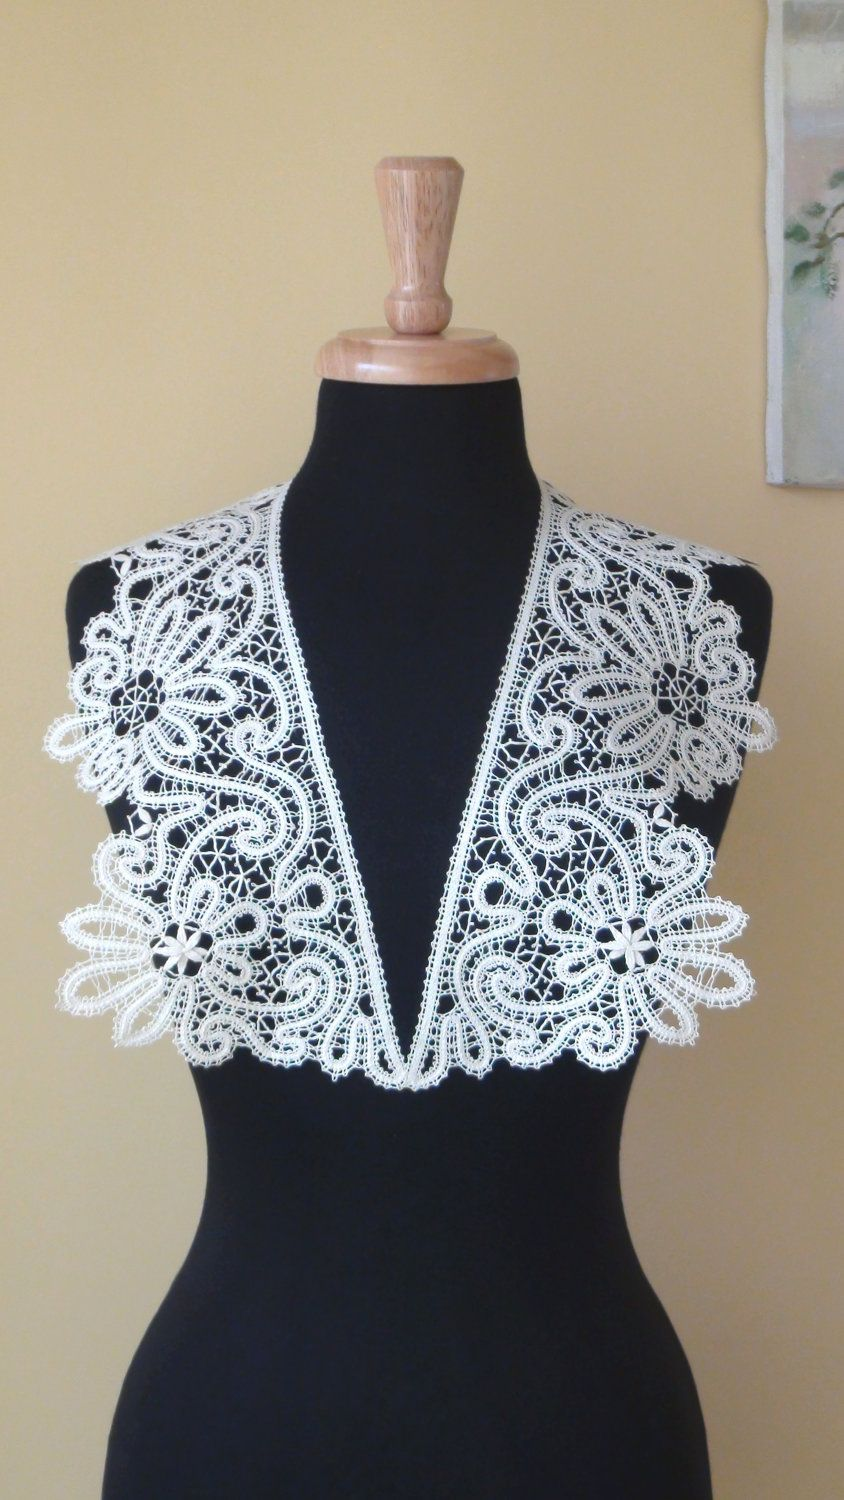 Bobbin Lace Collar by HandyMaria on Etsy | коклюшечное кружево ...